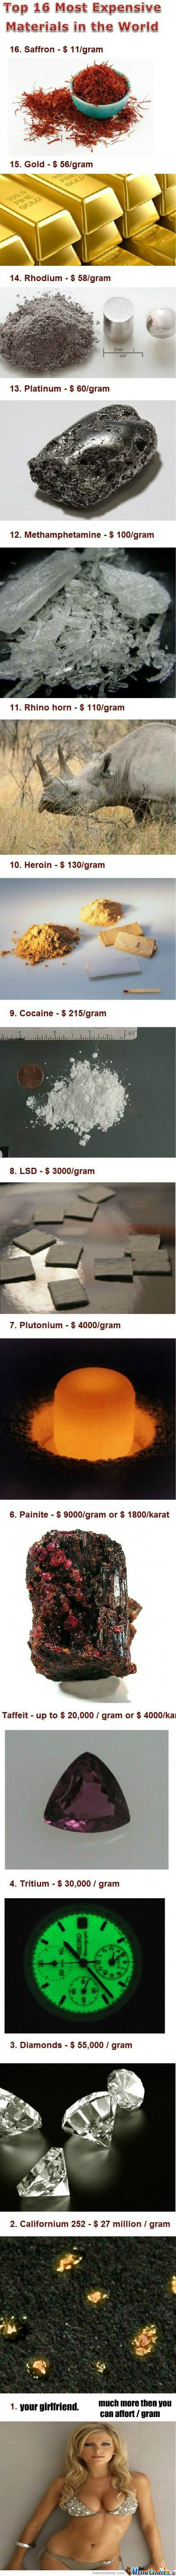 [RMX] Most Expensive Materials in the World